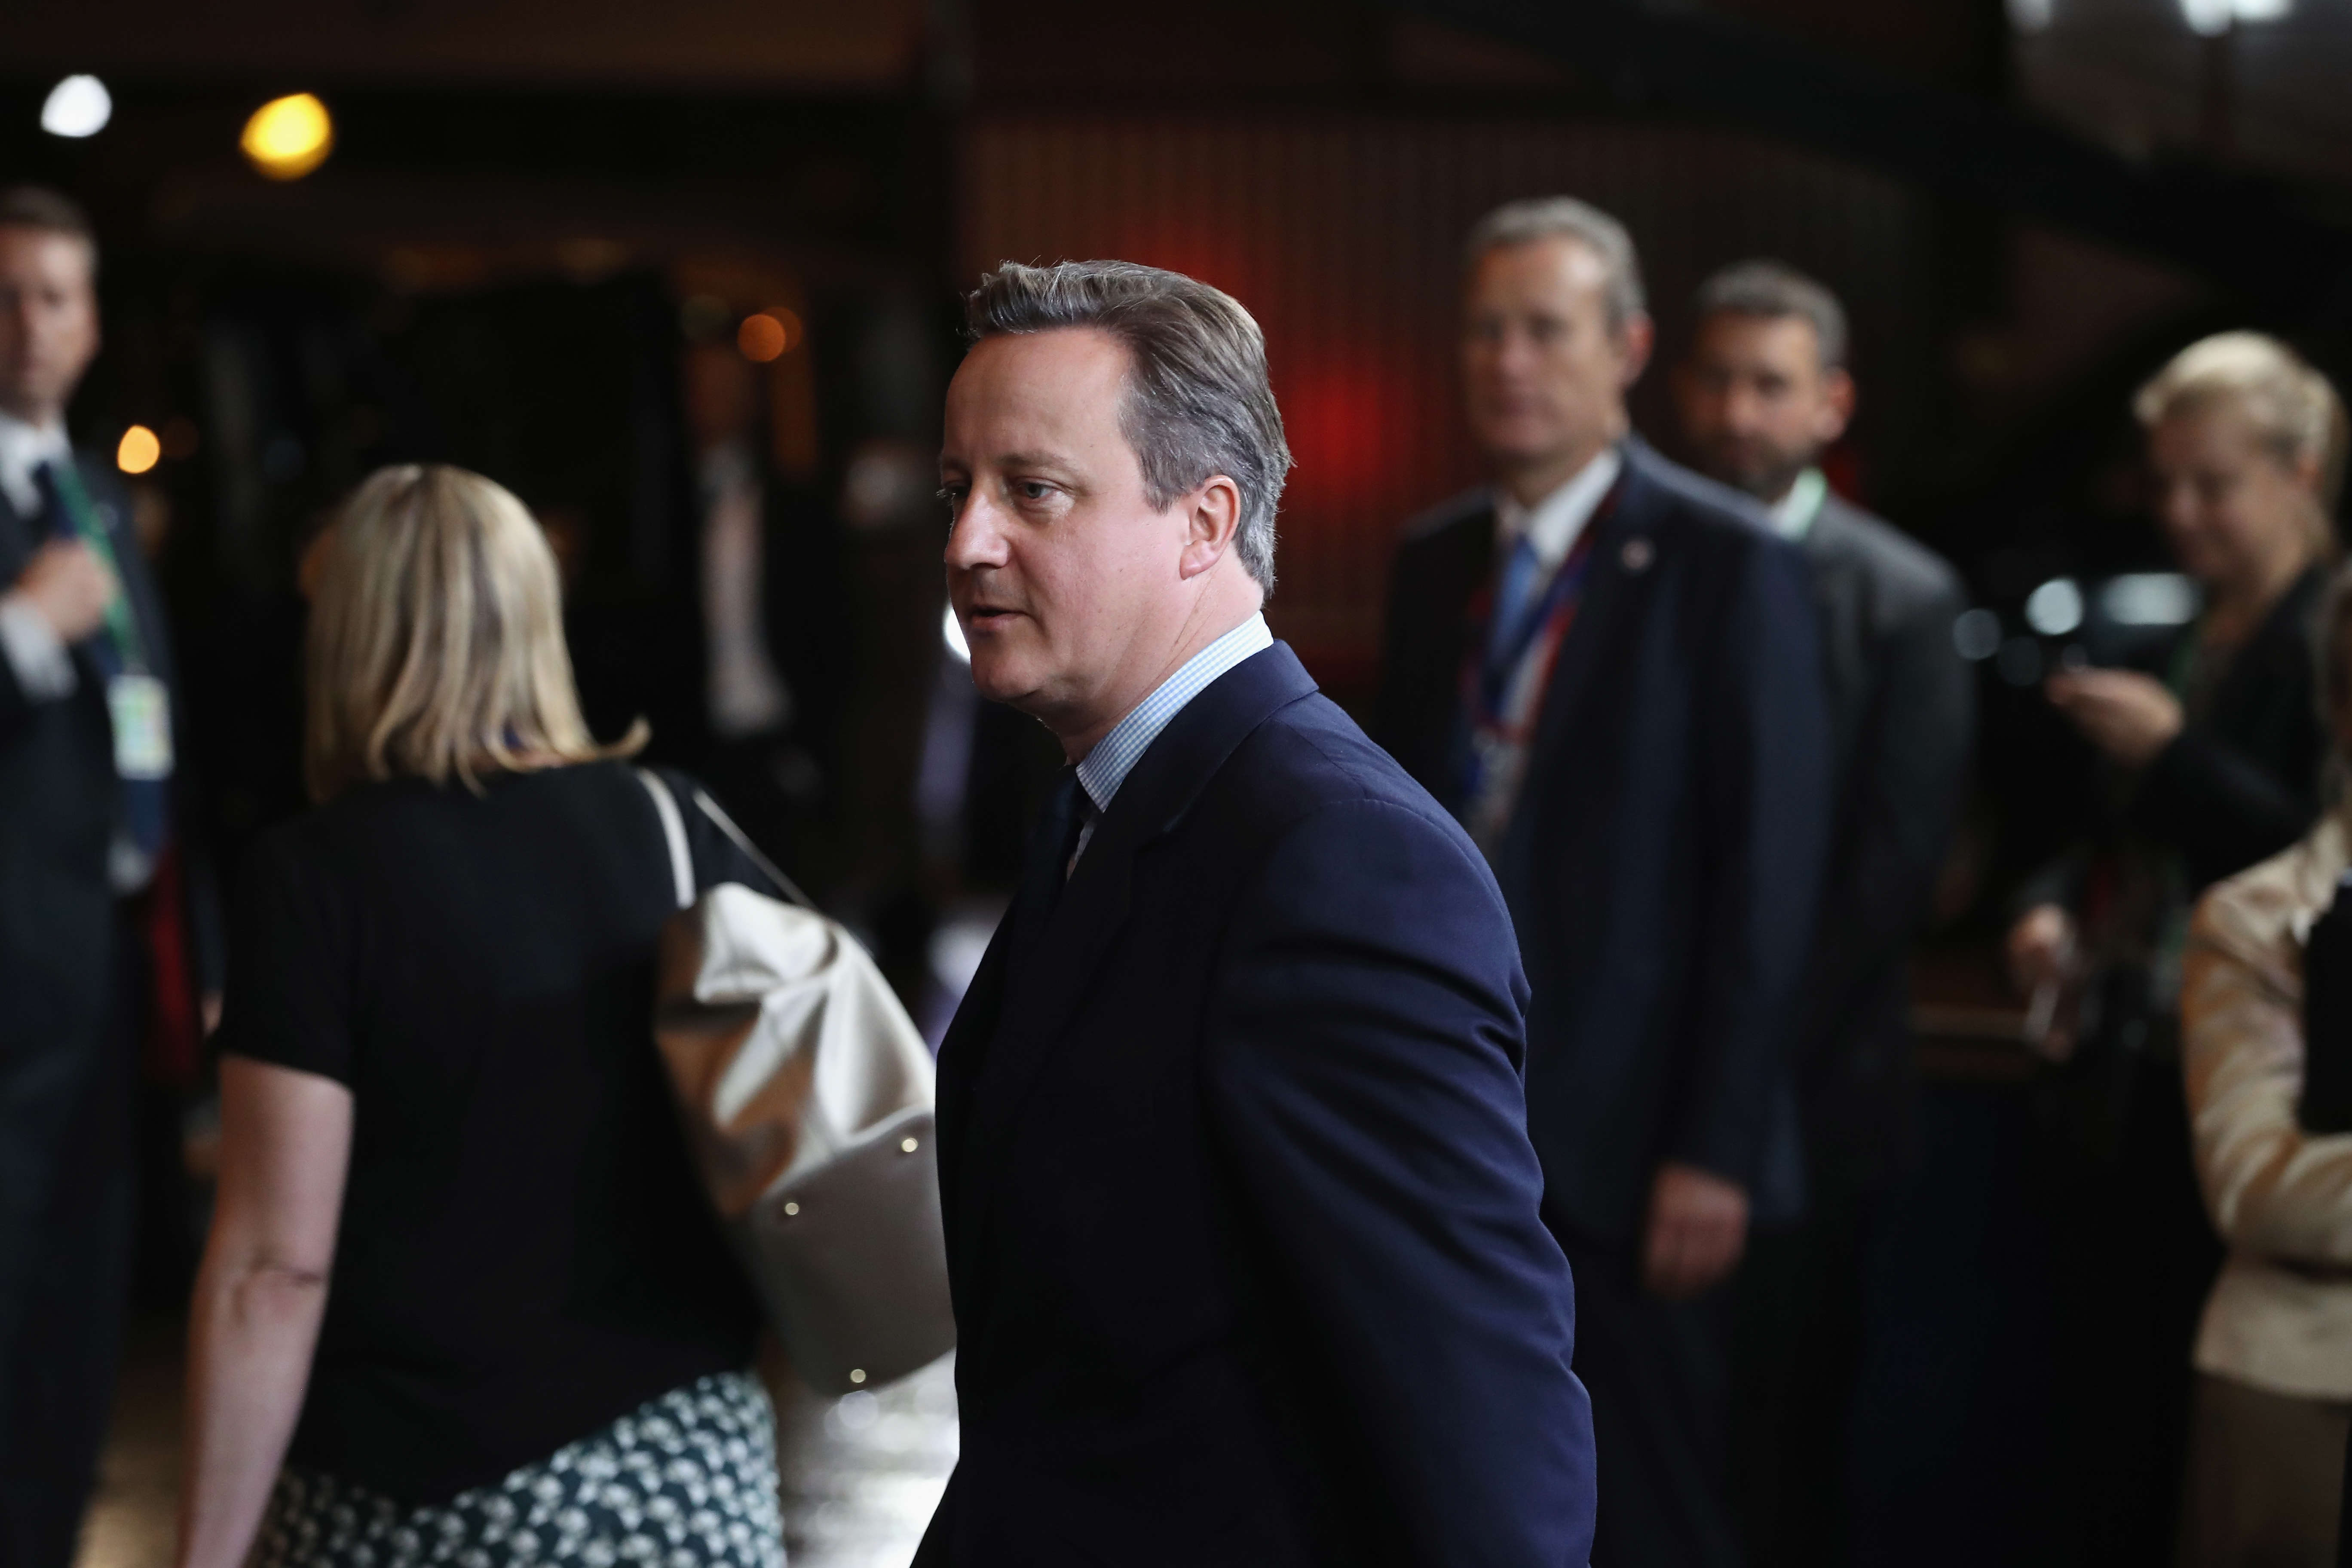 British Prime Minister Attends European Council Meeting Following The UK's Decision To Leave The EU